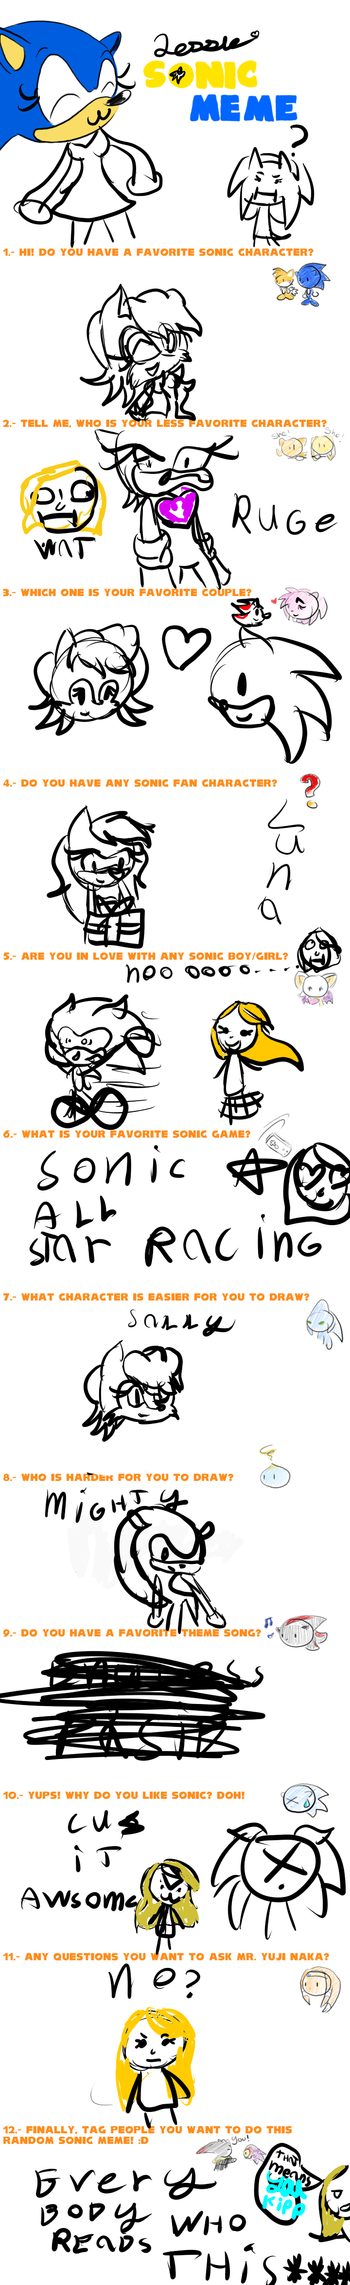 sonic meme !!!!!!! READ IT!!!!!!C: by sugarnluna15